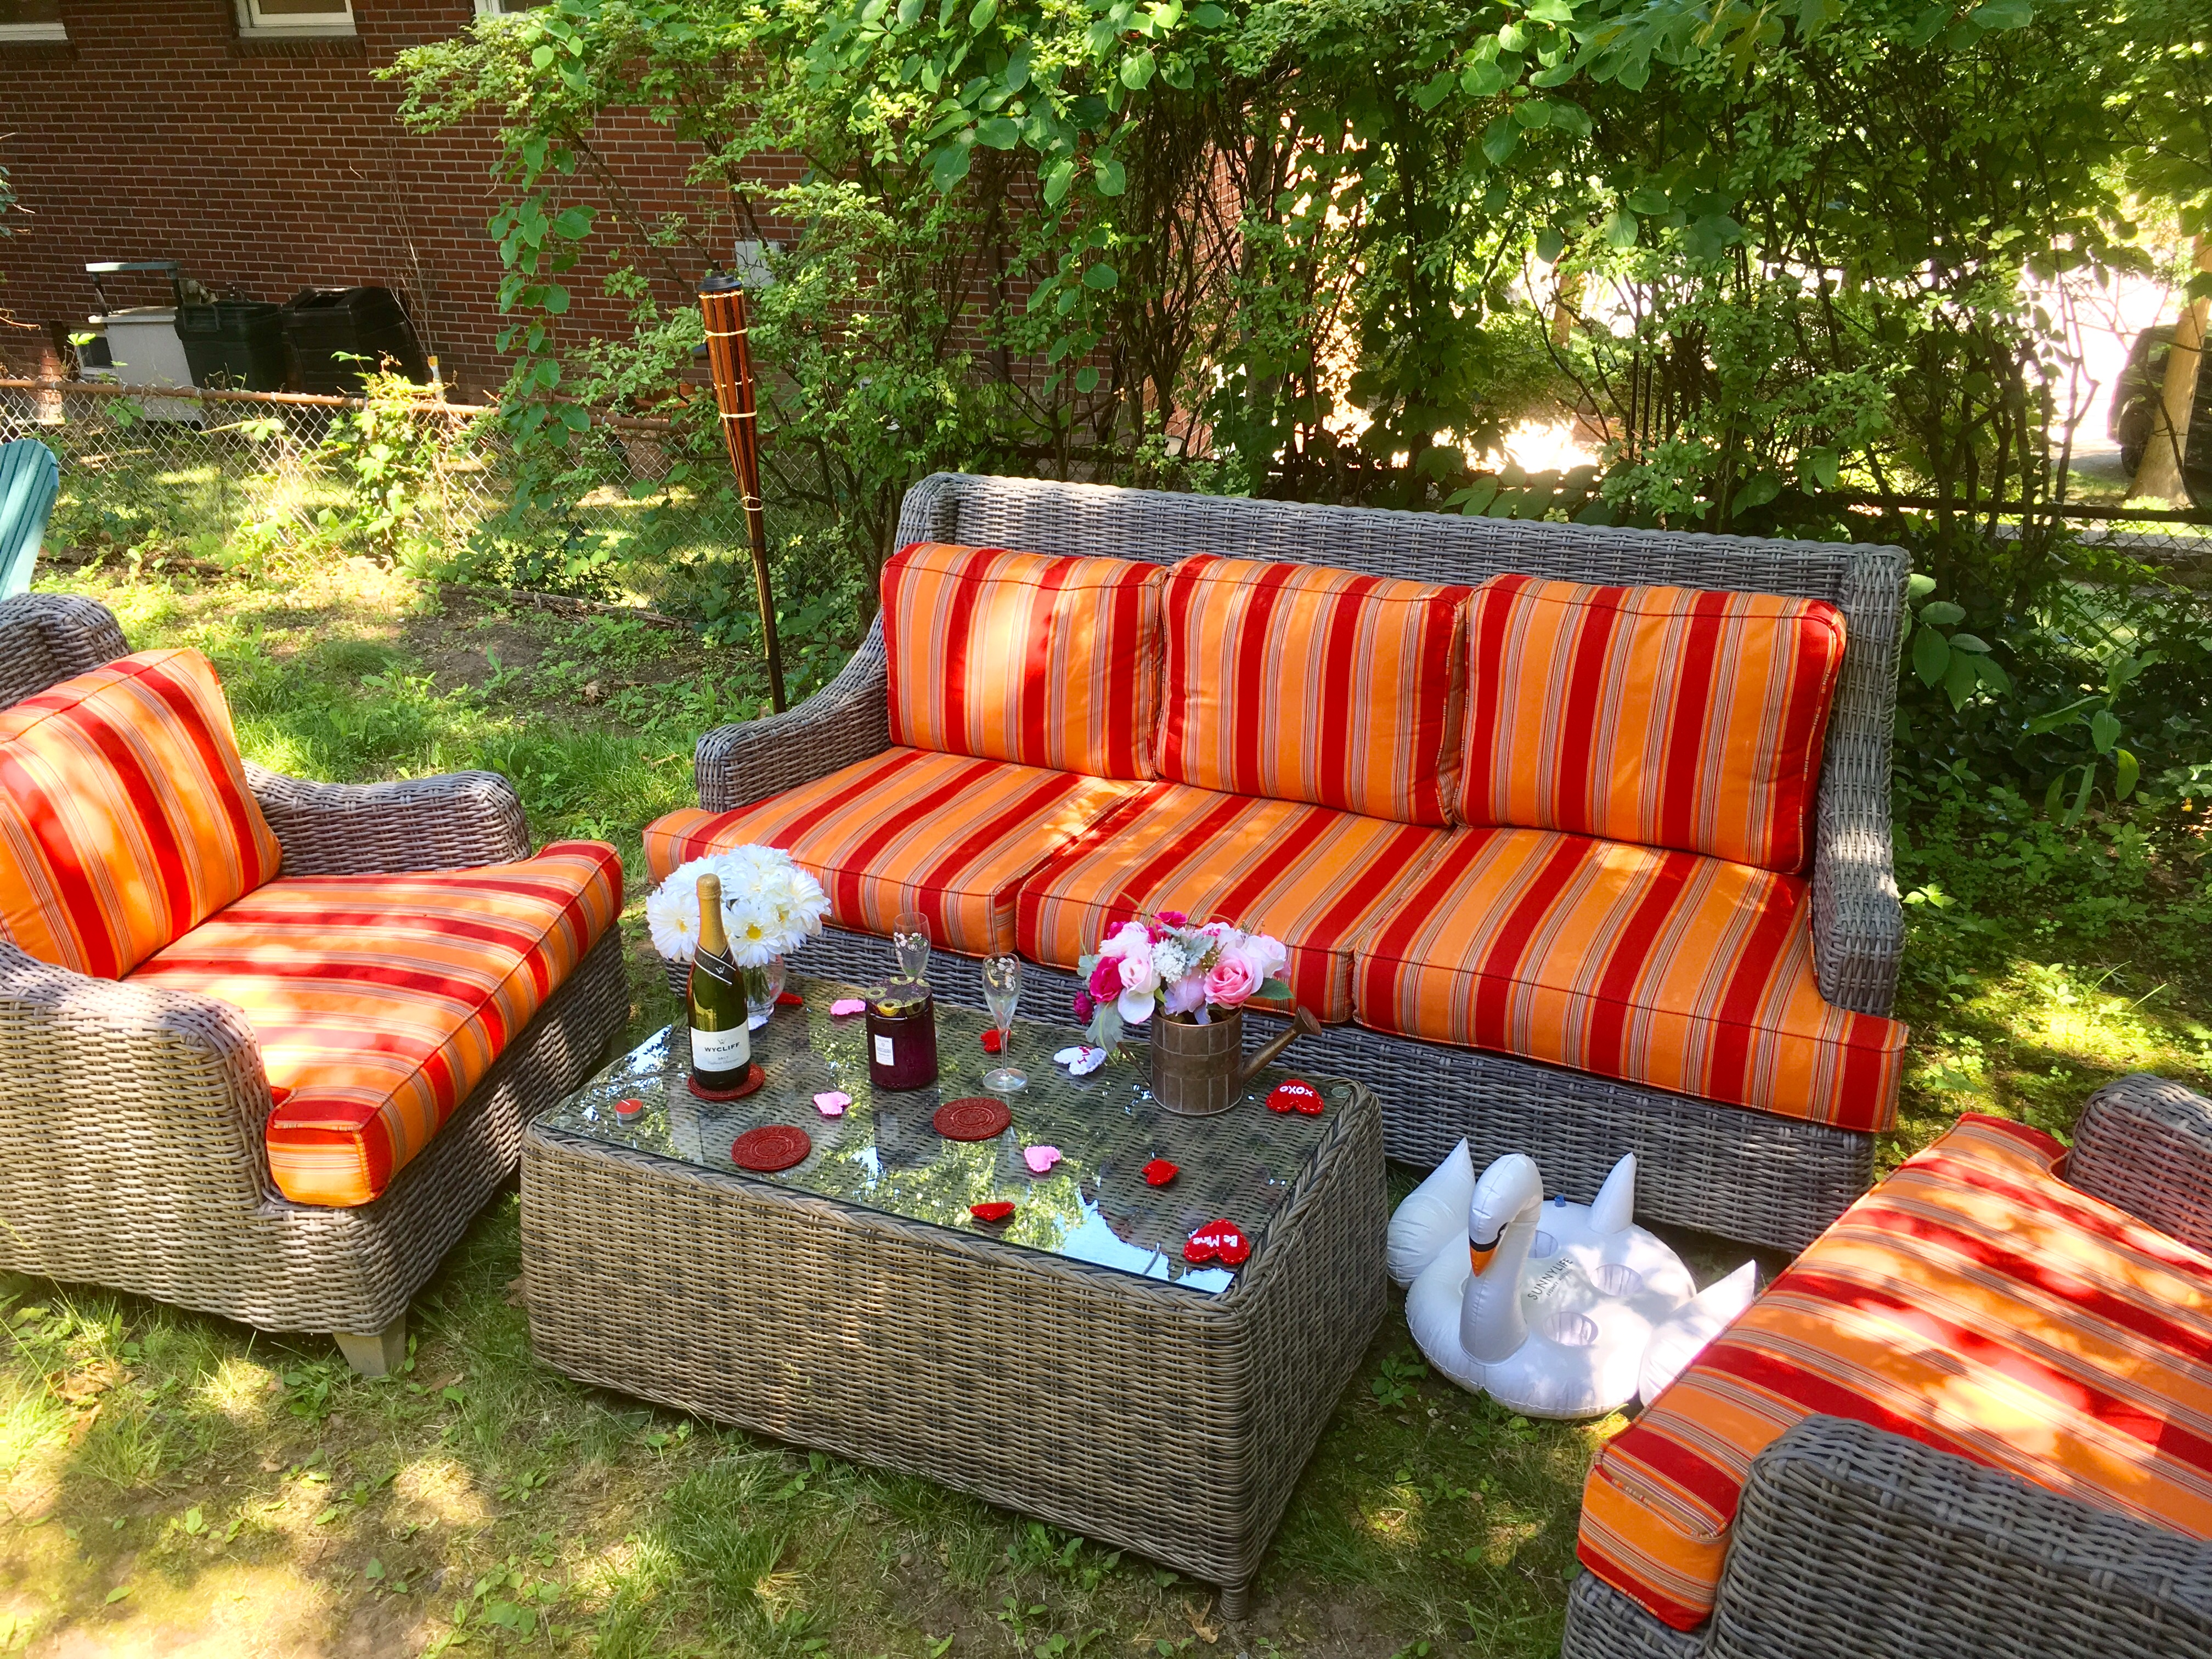 5 Ways to Create Your Very Own Summer Backyard Oasis